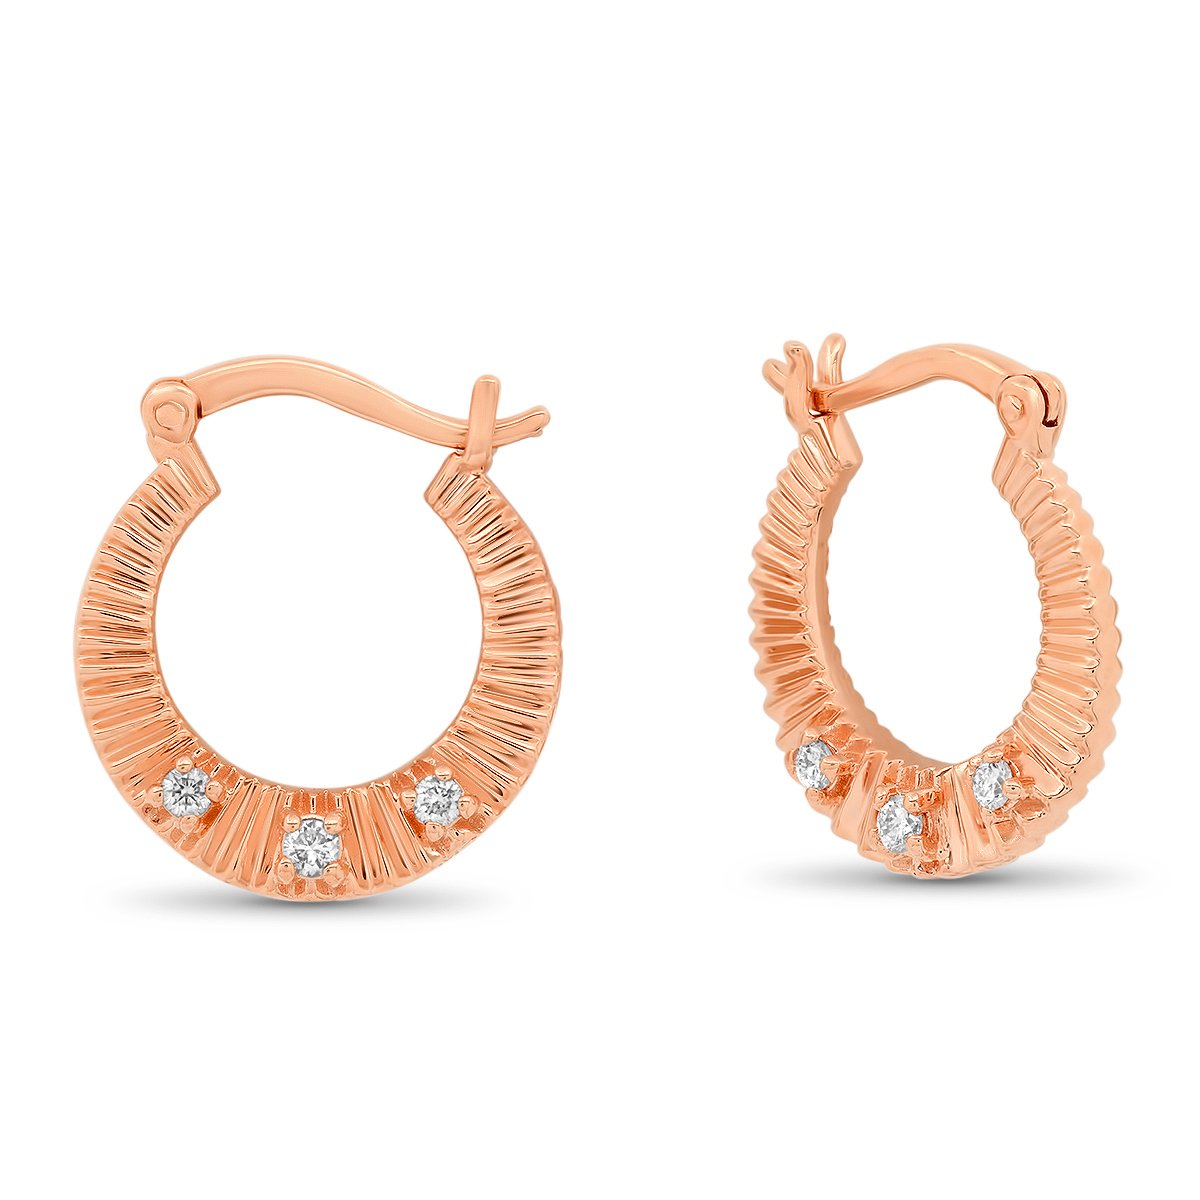 The Ashleigh Bergman Collective X My Story by Jackie Cohen Fluted Diamond Hoop Earrings